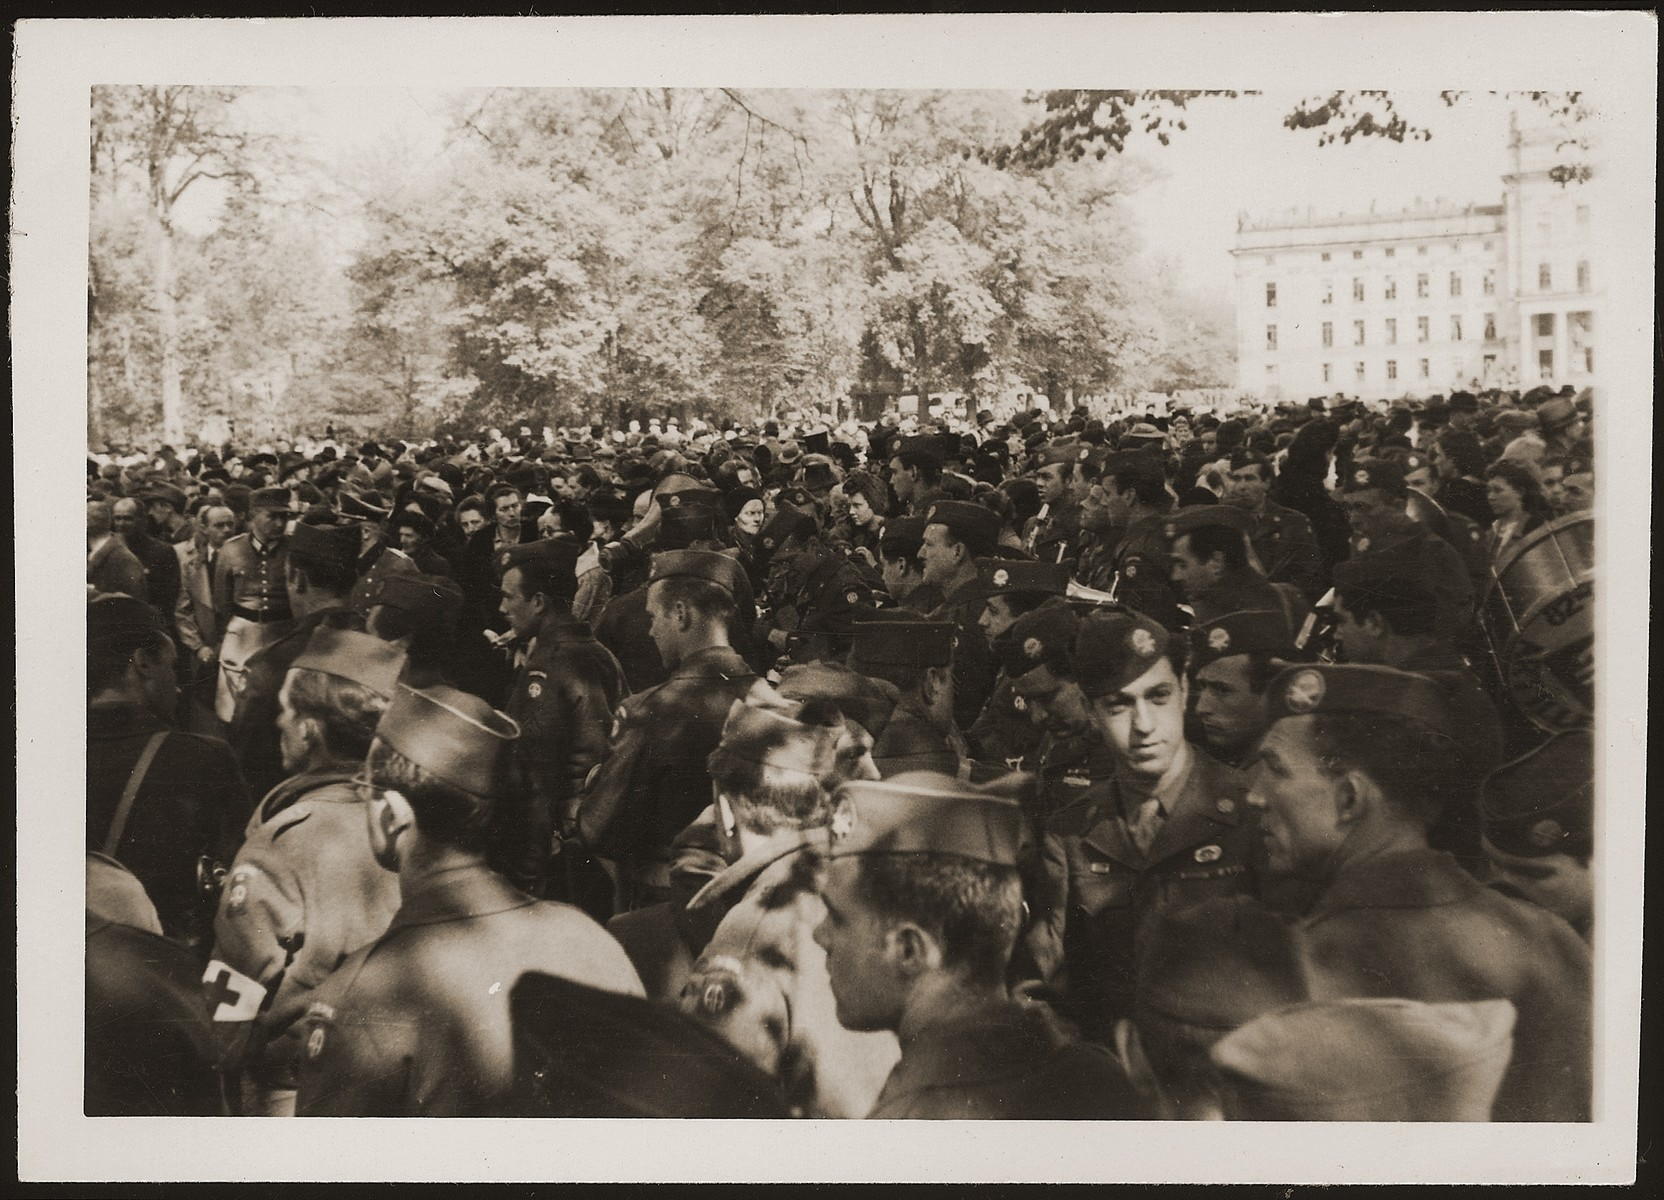 American soldiers in Ludwigslust at the funeral on the palace grounds of the Archduke of Mecklenburg, where the townspeople were forced by U.S. troops to bury the corpses of prisoners killed in the Woebbelin concentration camp .